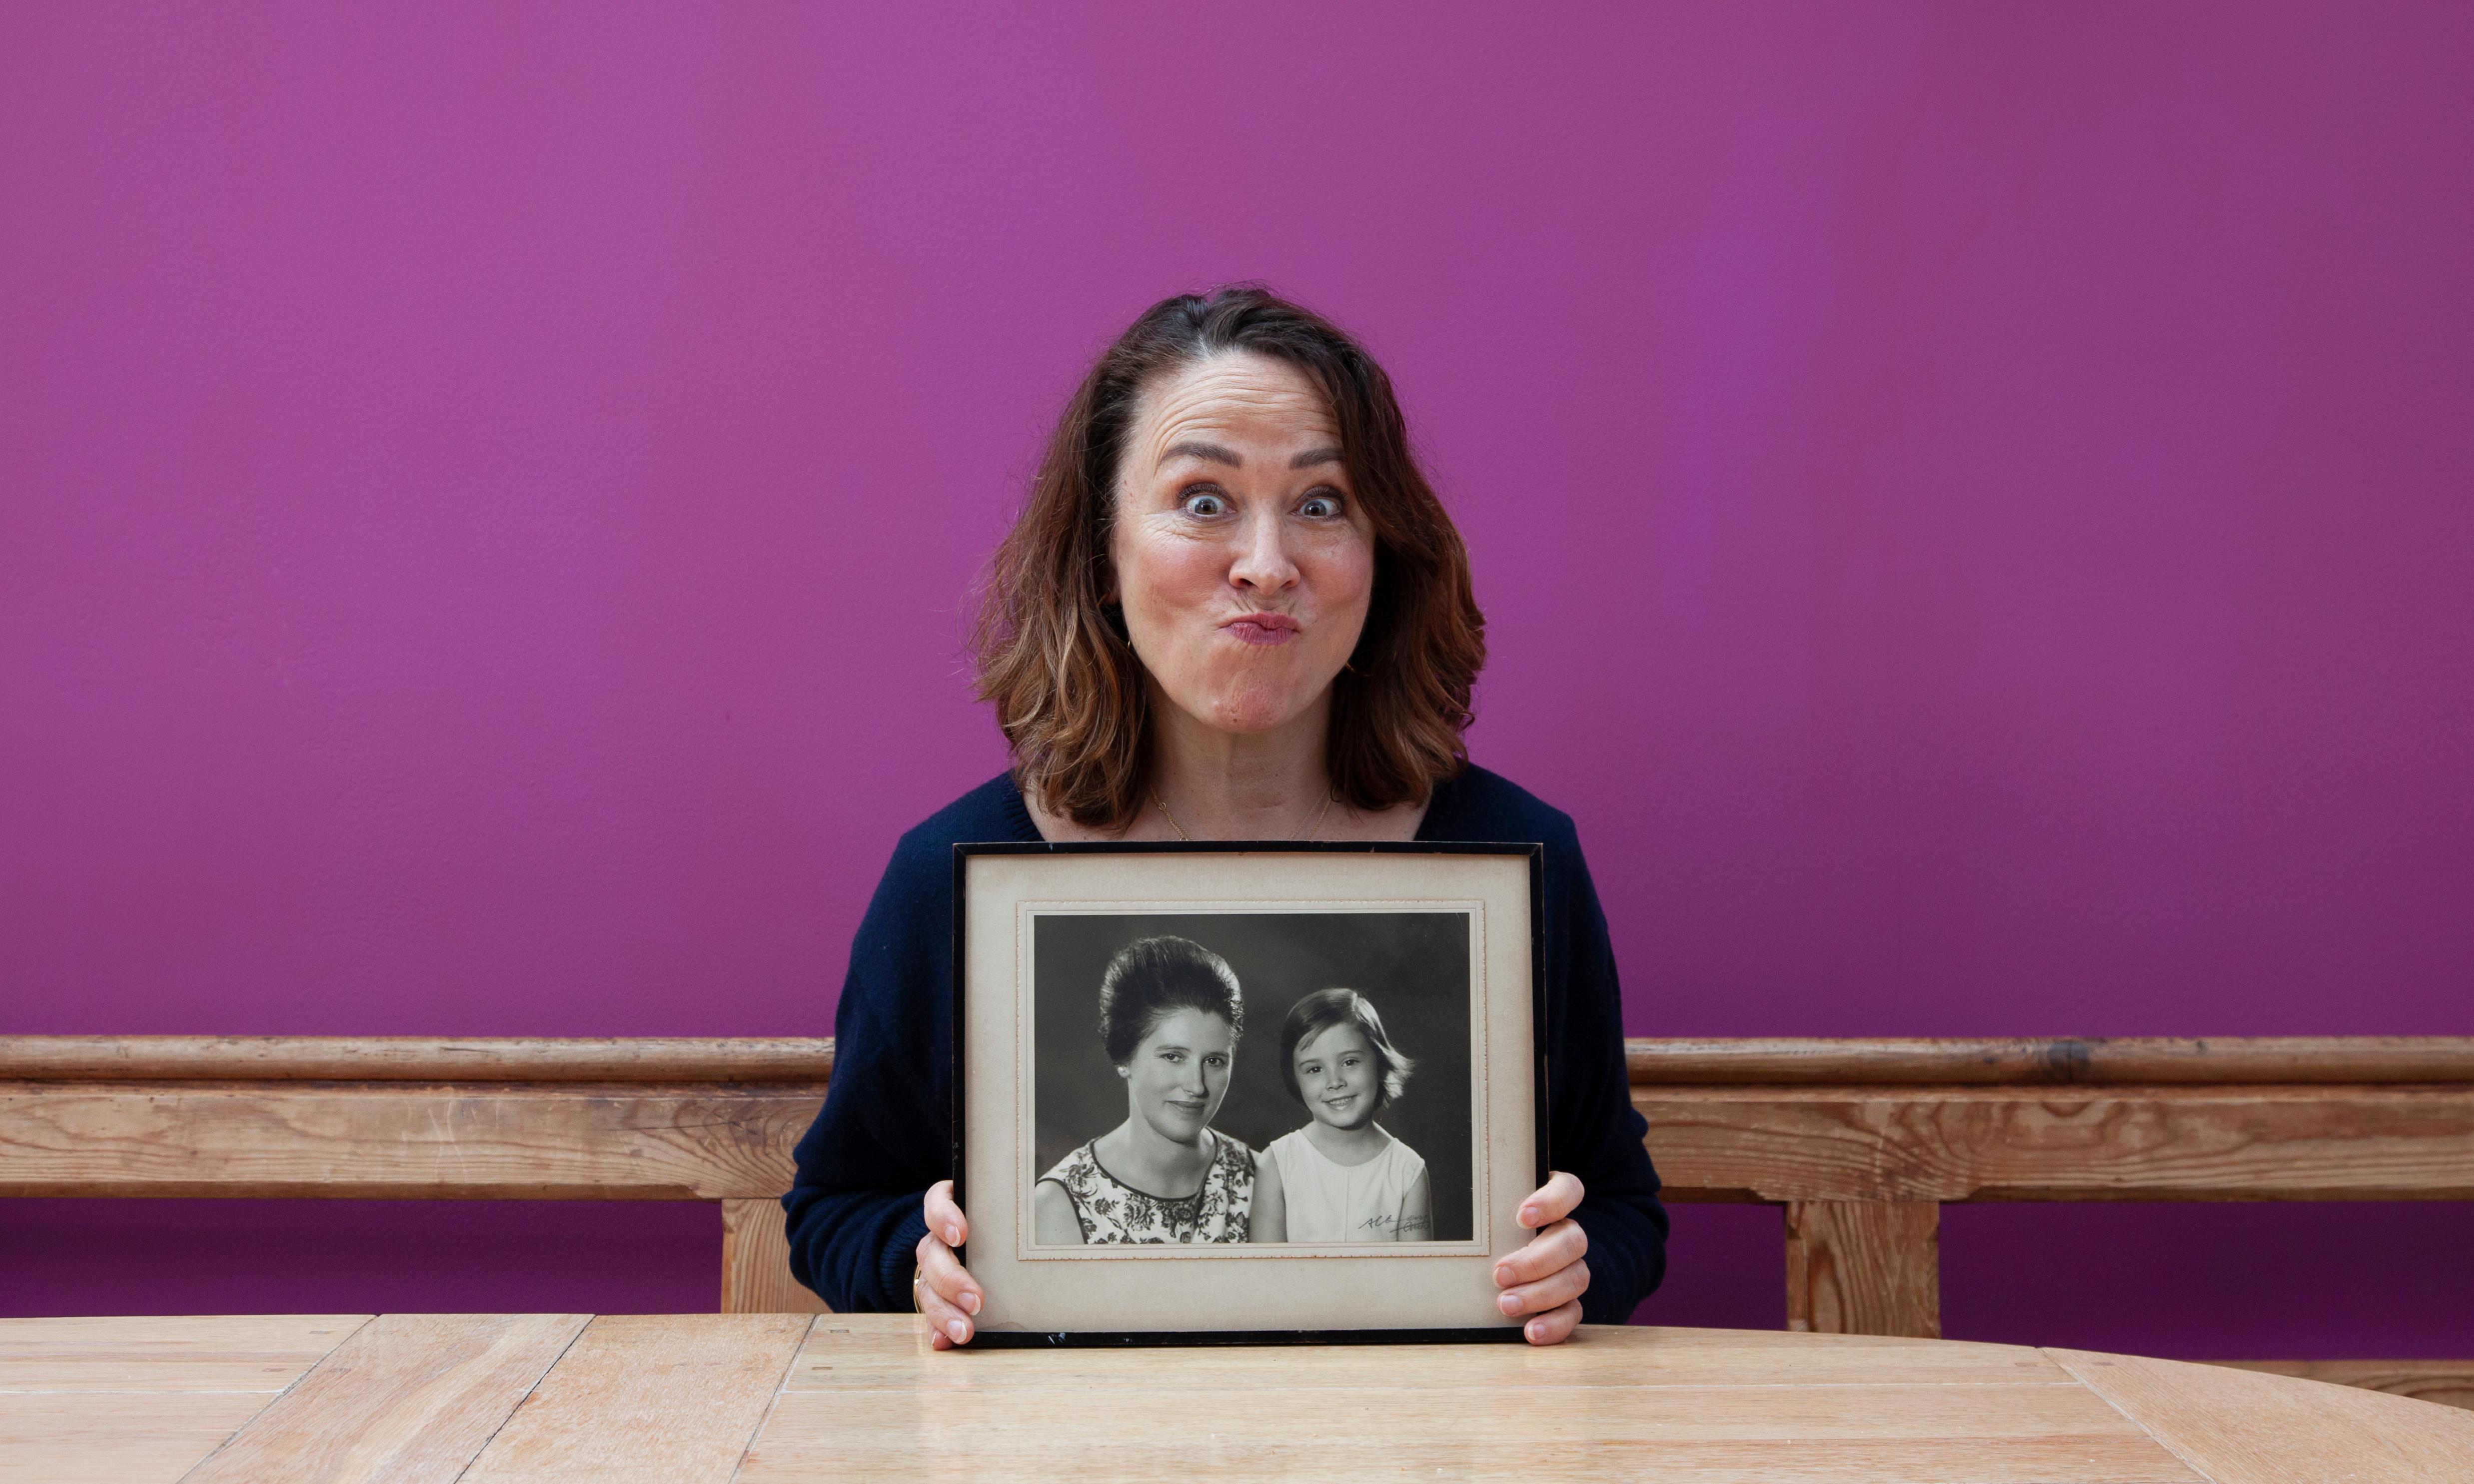 Arabella Weir on her aggressively unhappy mother: 'In my memory, she got rid of me'